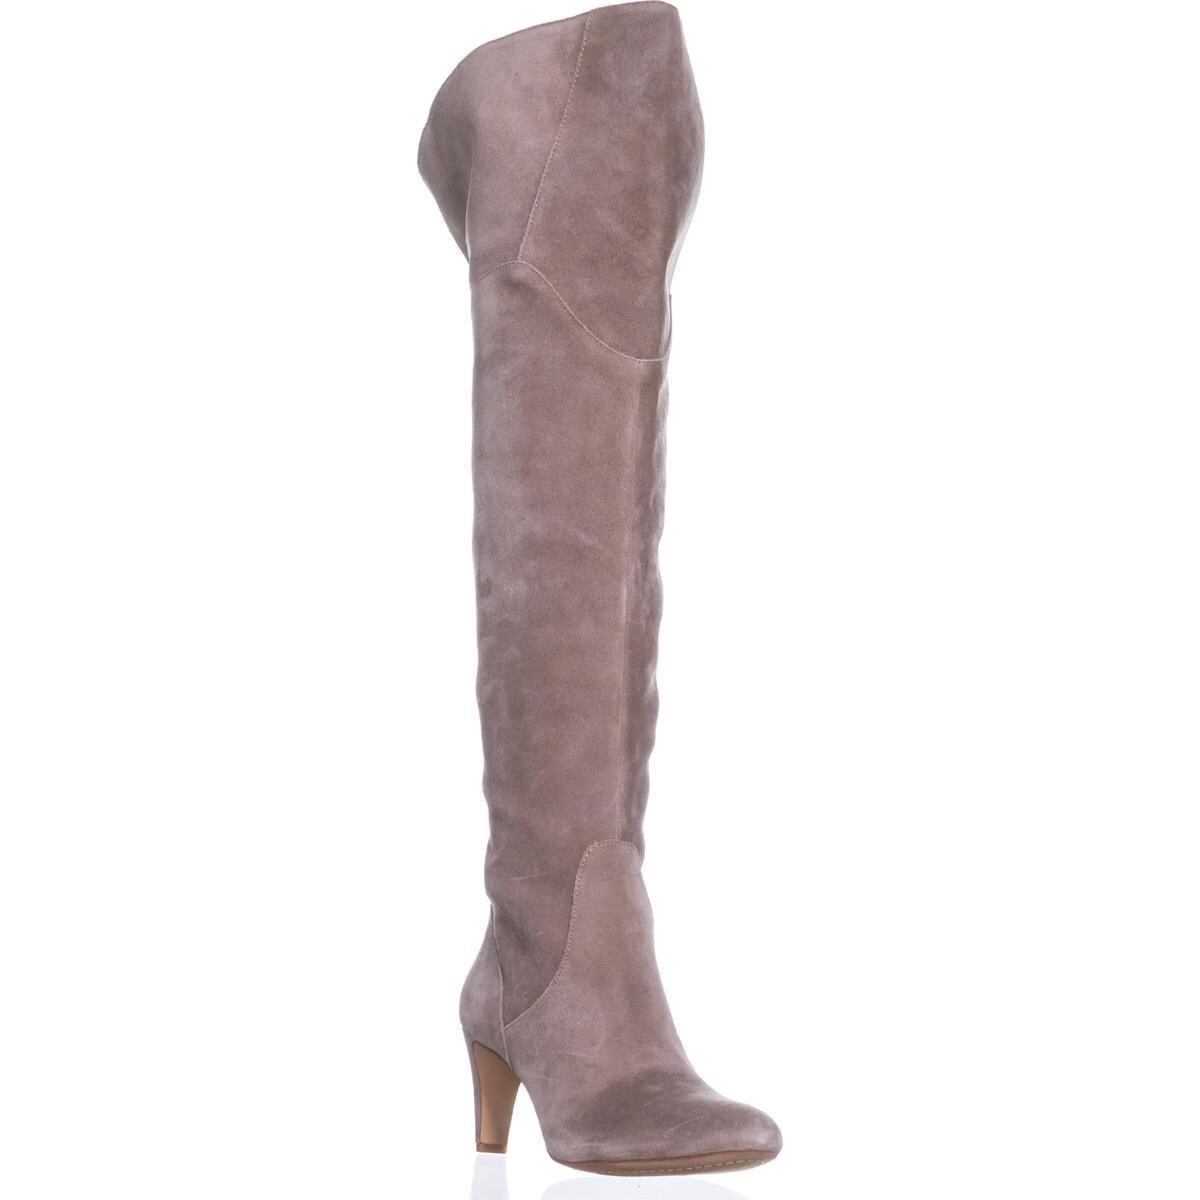 89398a0fee4 Shop Vince Camuto Armaceli Over The Knee Boots